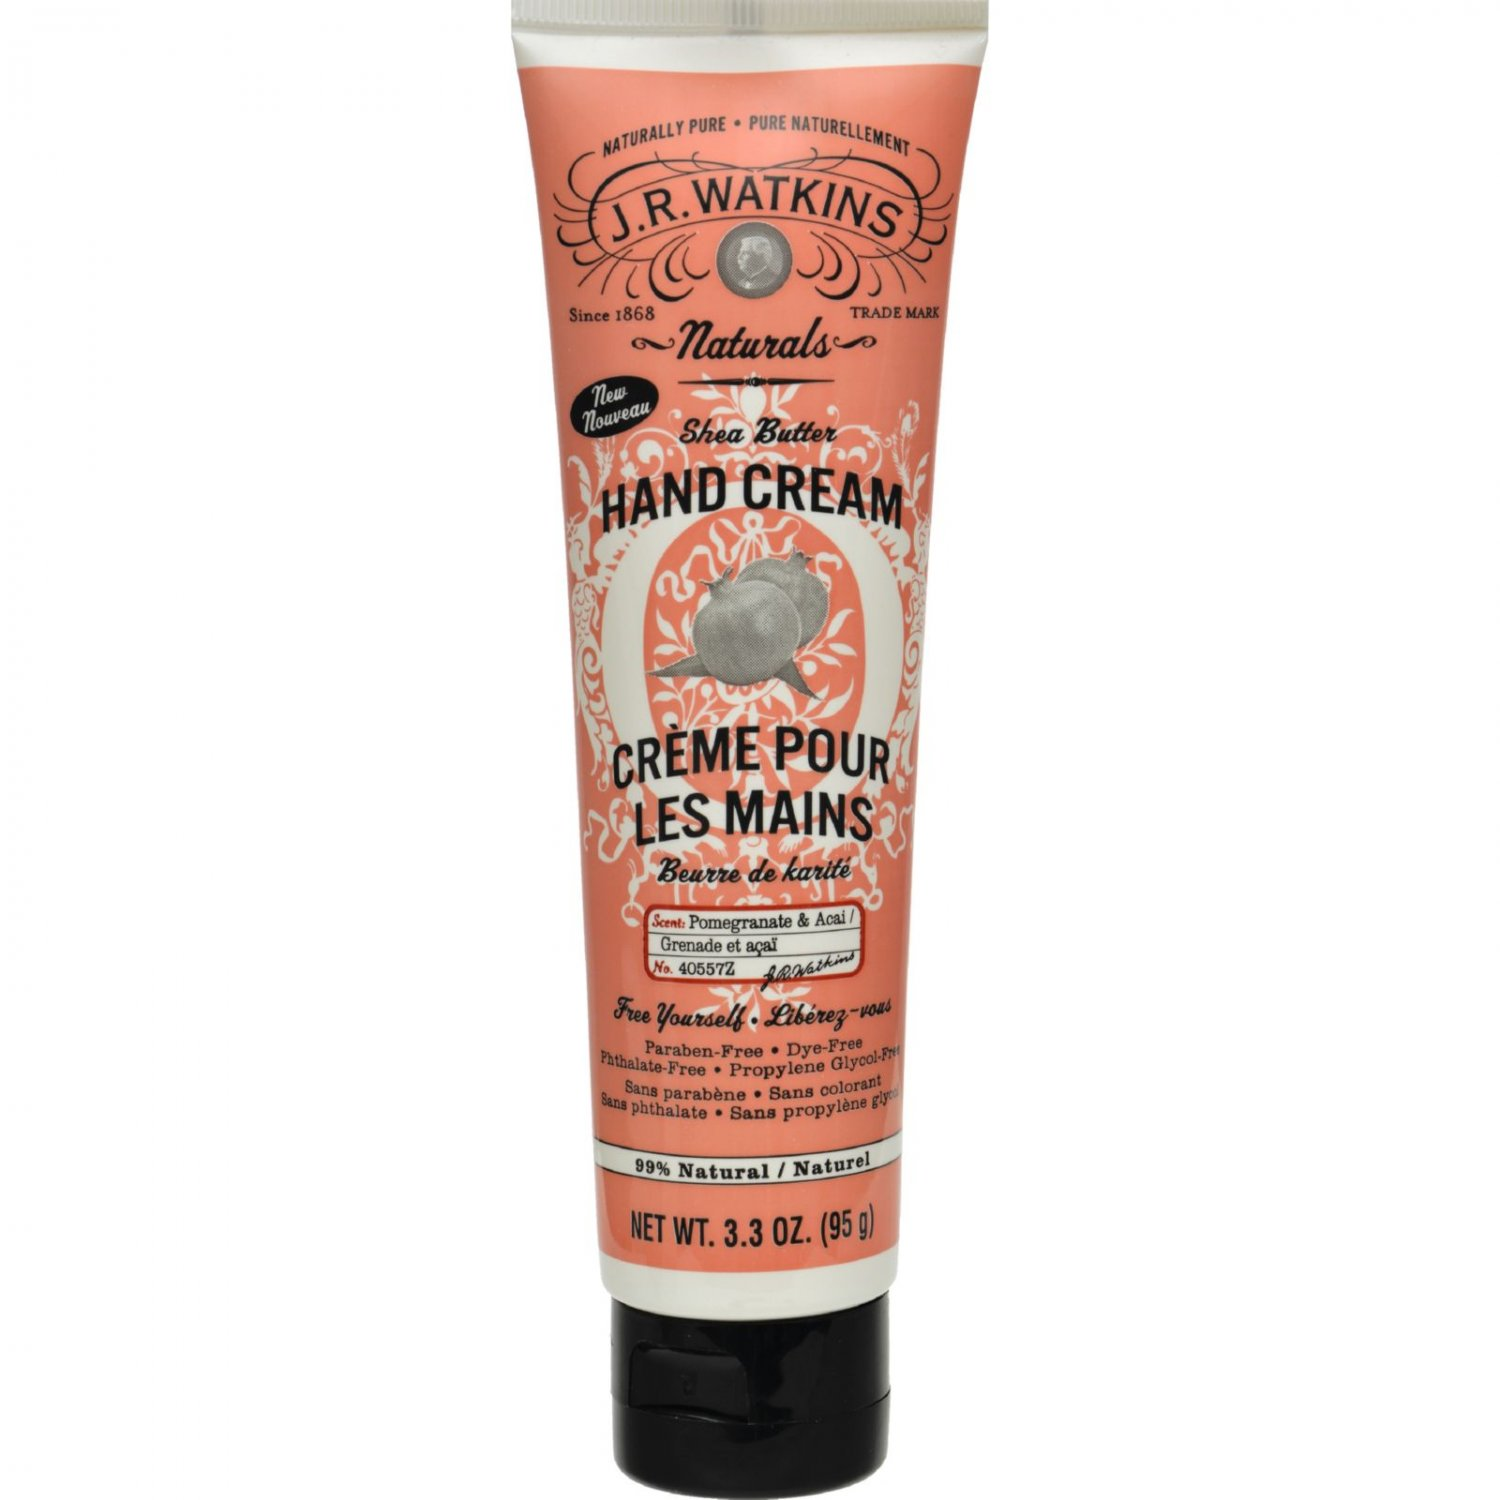 J.R. Watkins Hand Cream - Pomegranate and Acai - 3.3 oz